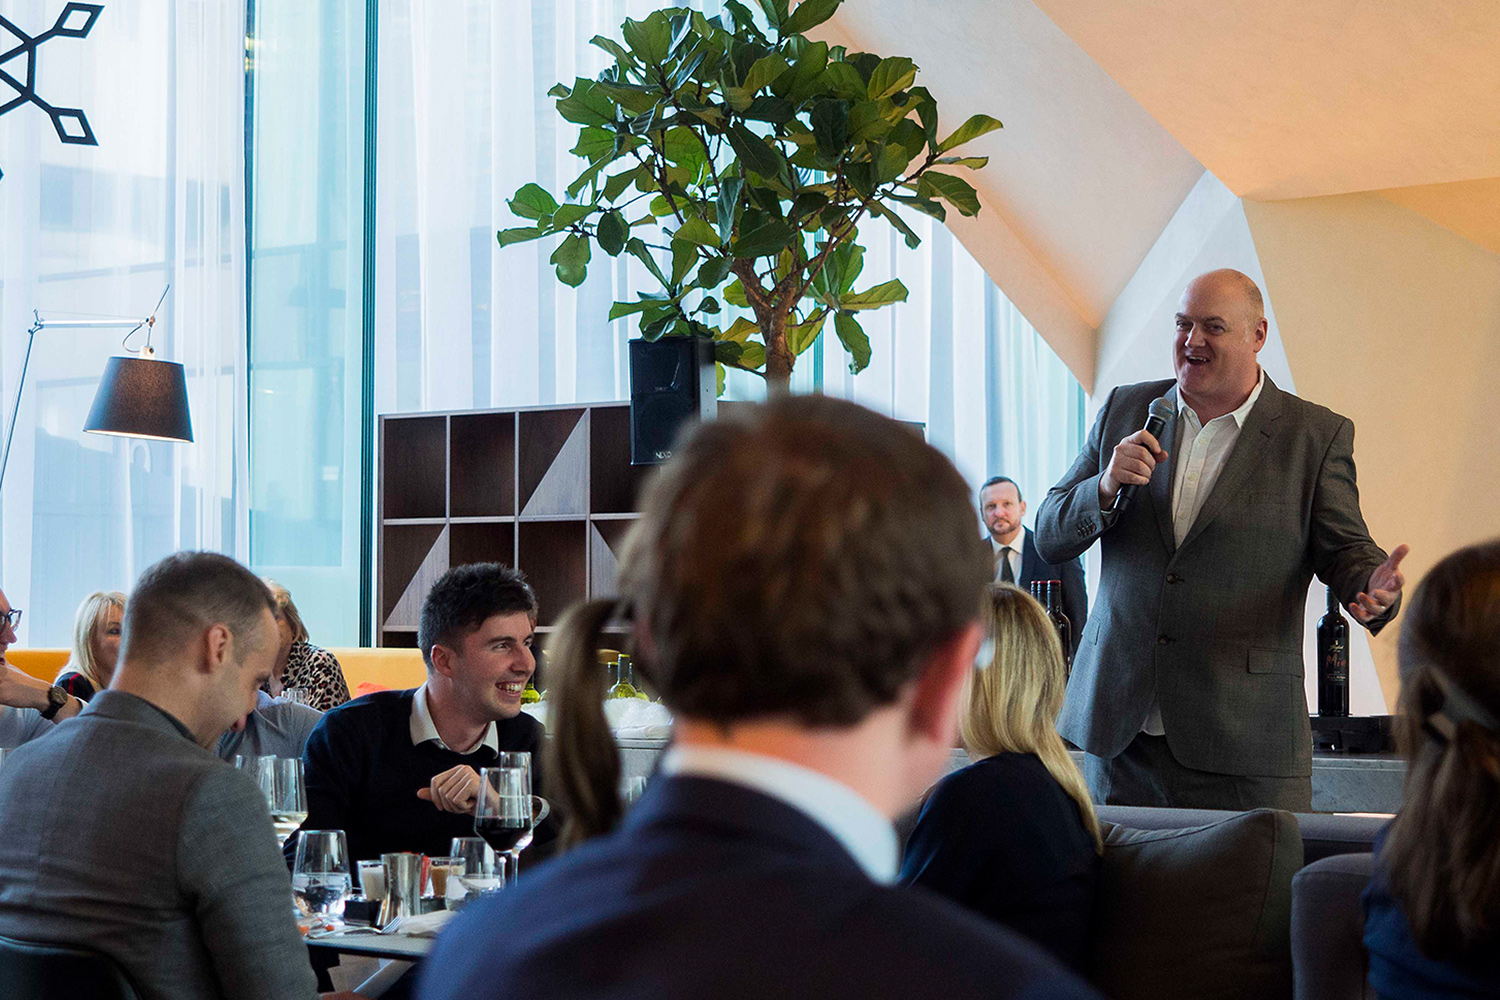 Dara O'Briain at the Jack & Jill event